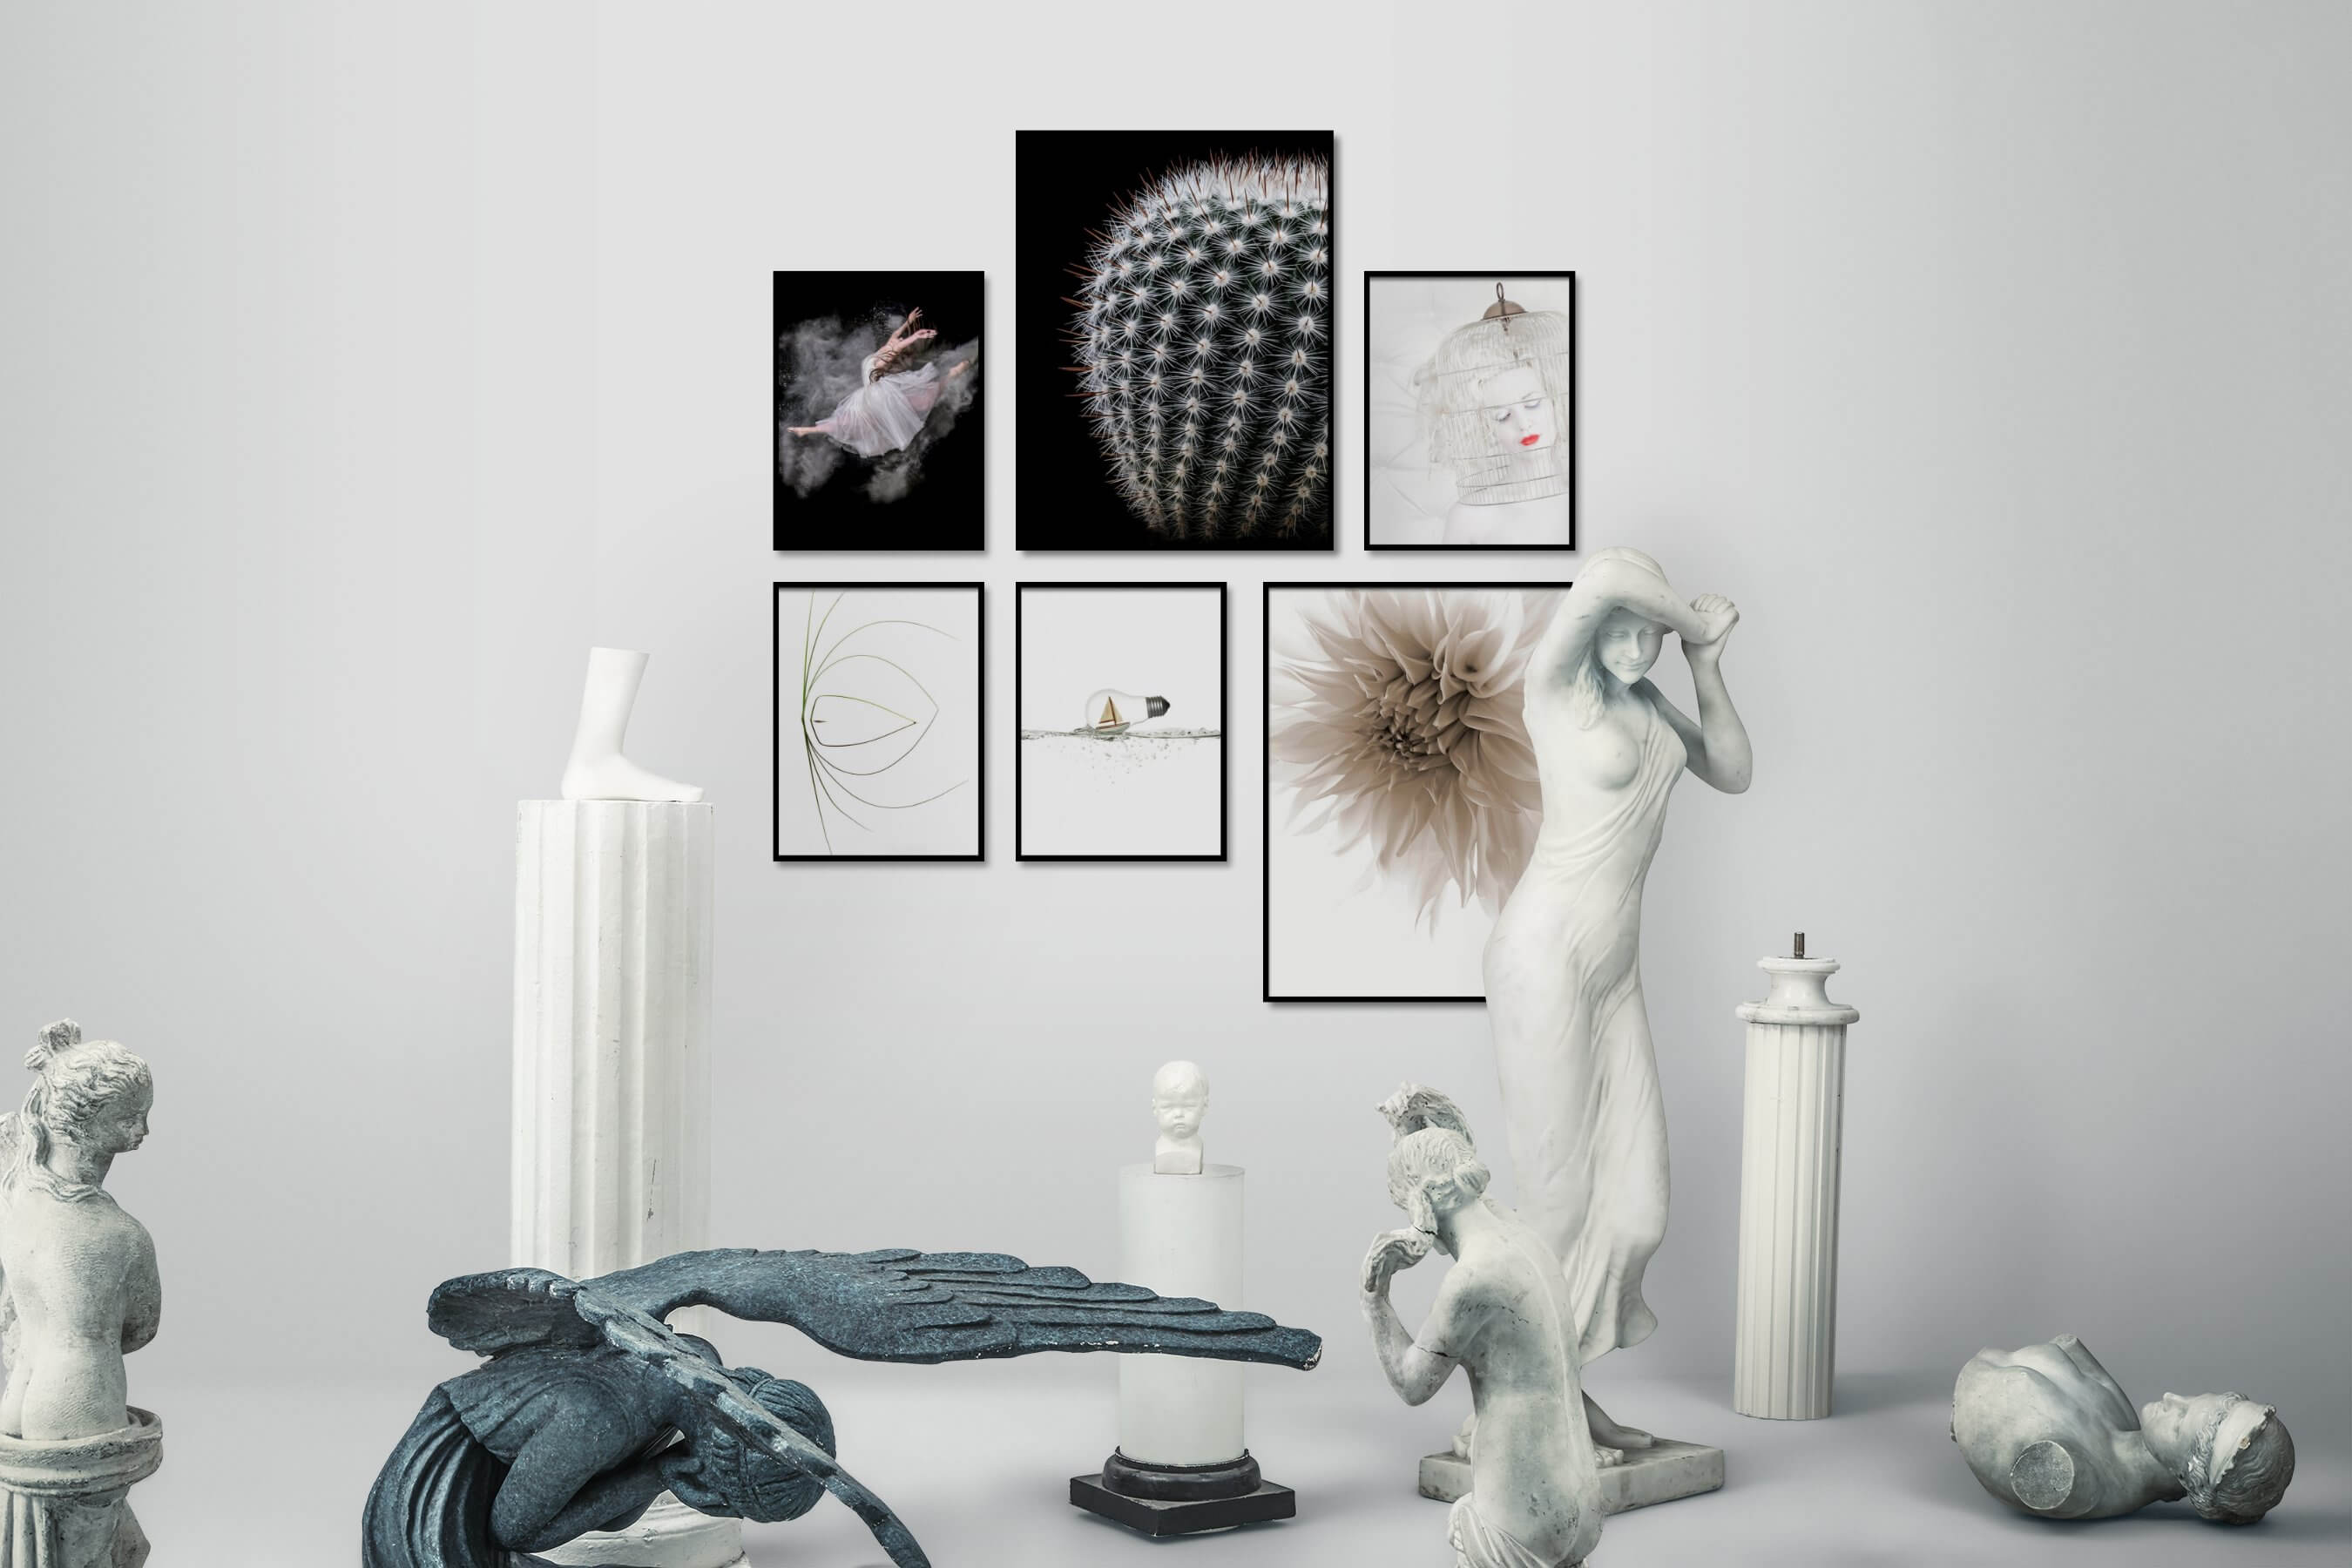 Gallery wall idea with six framed pictures arranged on a wall depicting Fashion & Beauty, Dark Tones, For the Minimalist, Flowers & Plants, Bright Tones, Mindfulness, Beach & Water, For the Moderate, and Artsy